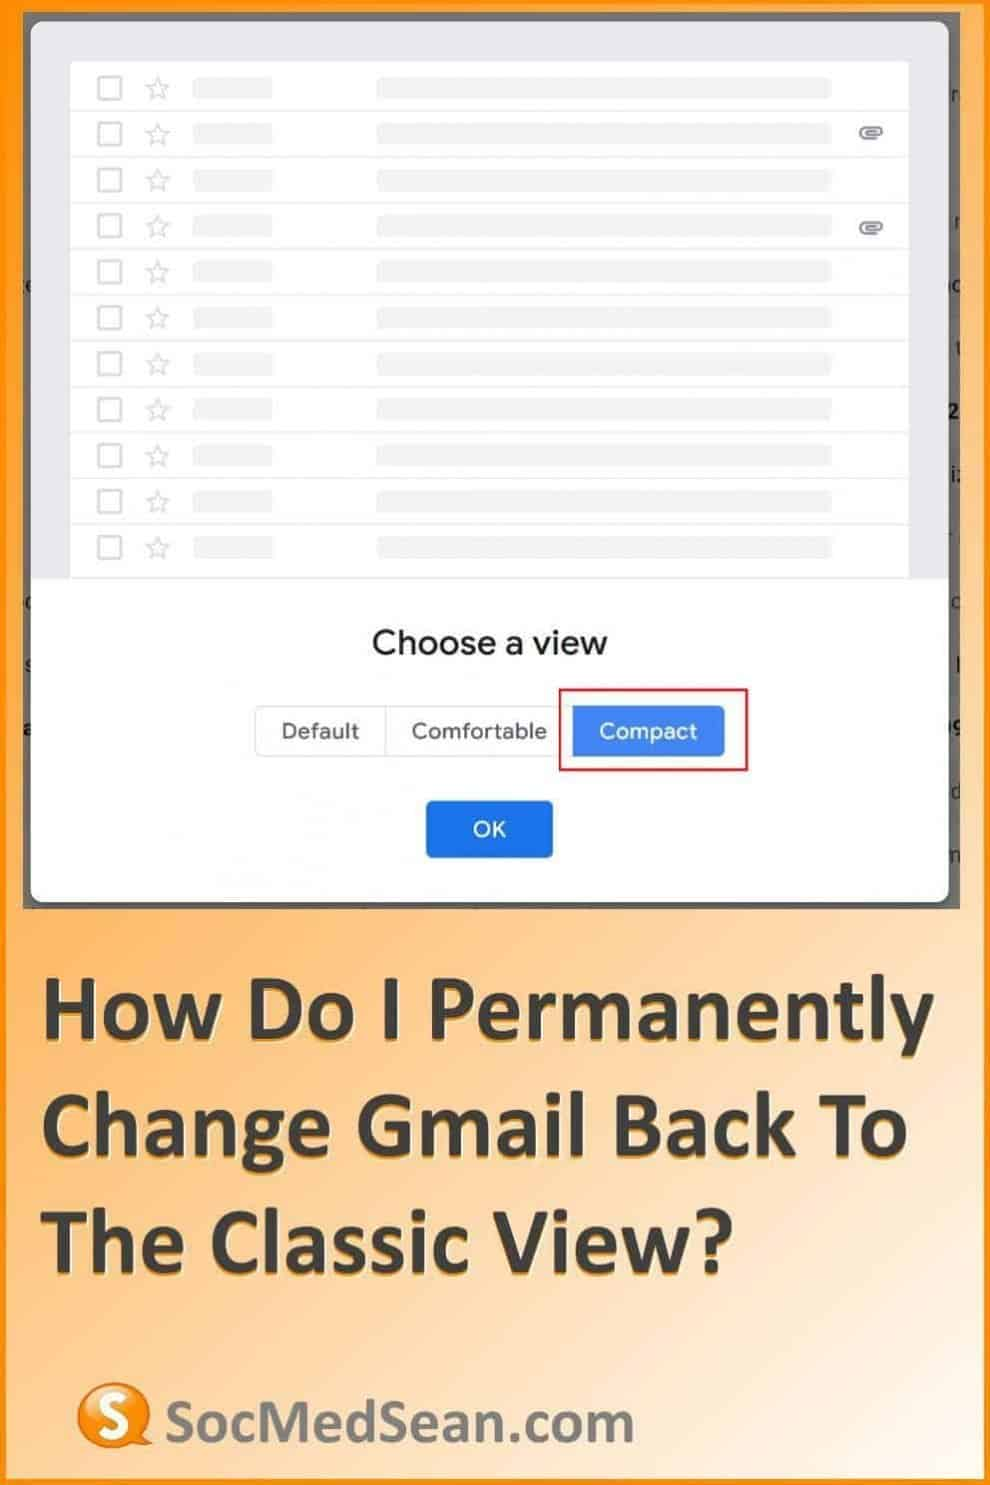 Change Gmail Back To Classic View Permanently